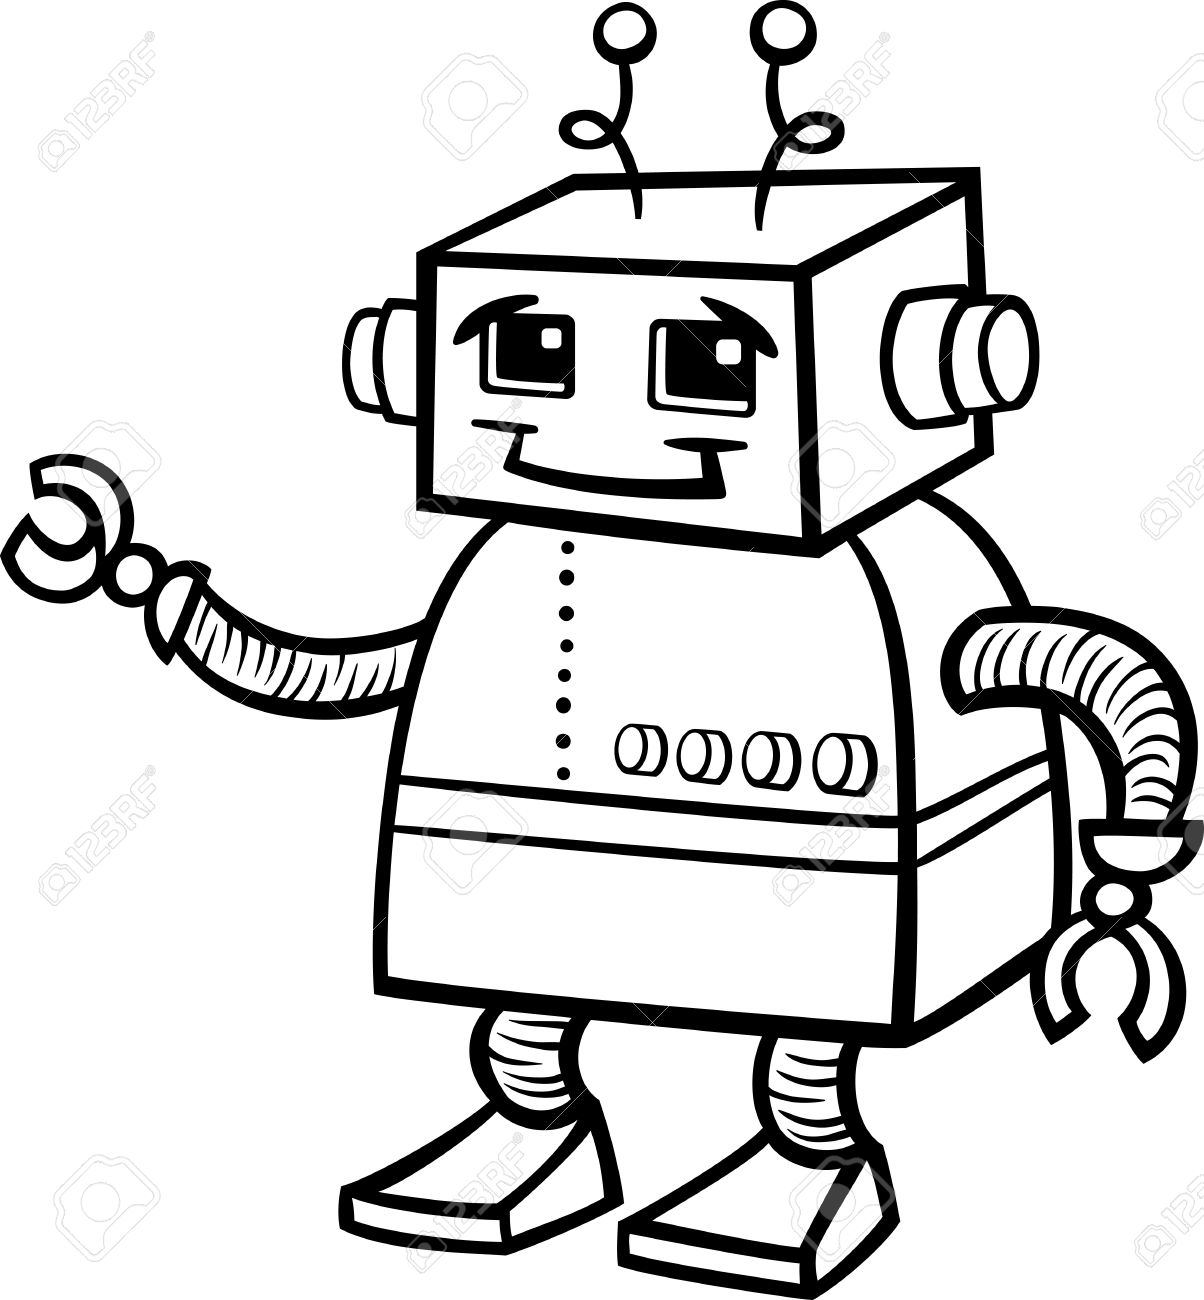 Black And White Cartoon Of Cute Robot Or Droid For Children To.